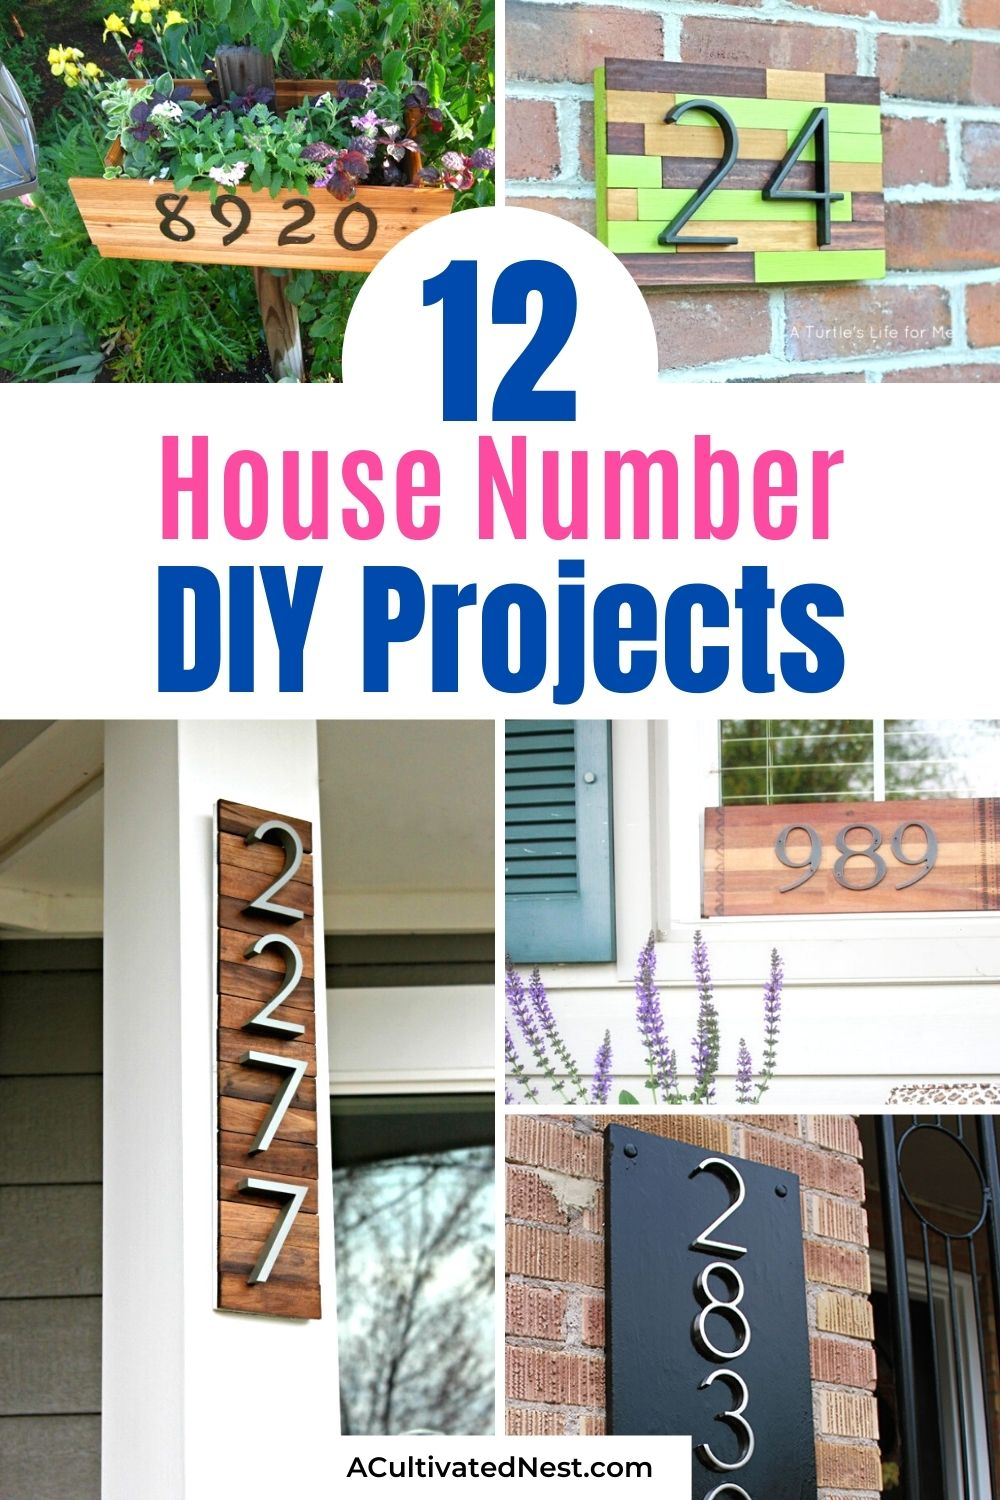 12 DIY House Number Projects- If you want to freshen up the outside of your home, you should try one of these DIY house number projects! They're great spring and summer projects to add curb appeal! | outdoor décor DIYs, #outdoorDecor #diyHouseNumbers #diyProjects #outdoorDIYs #ACultivatedNest